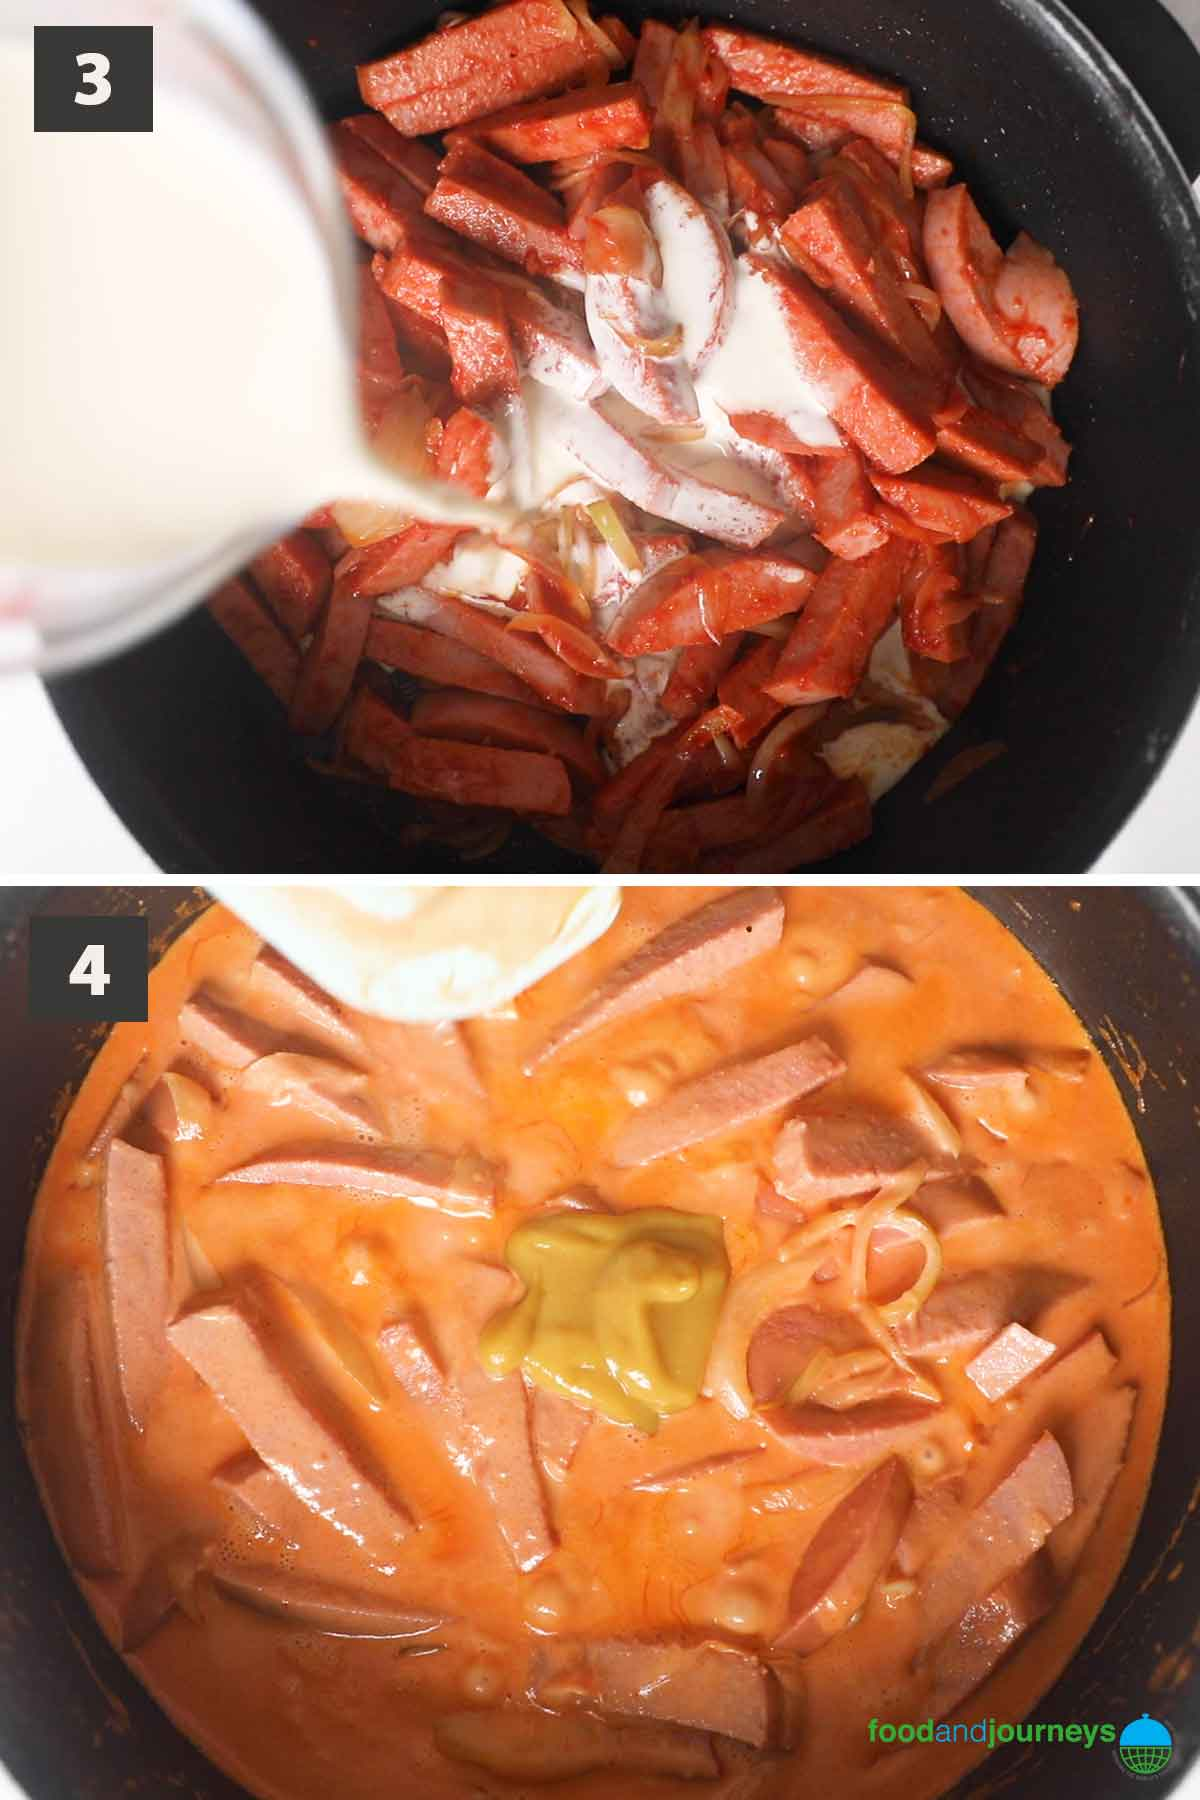 Second part of a collage of images showing the step by step process of making Swedish sausage stroganoff at home.